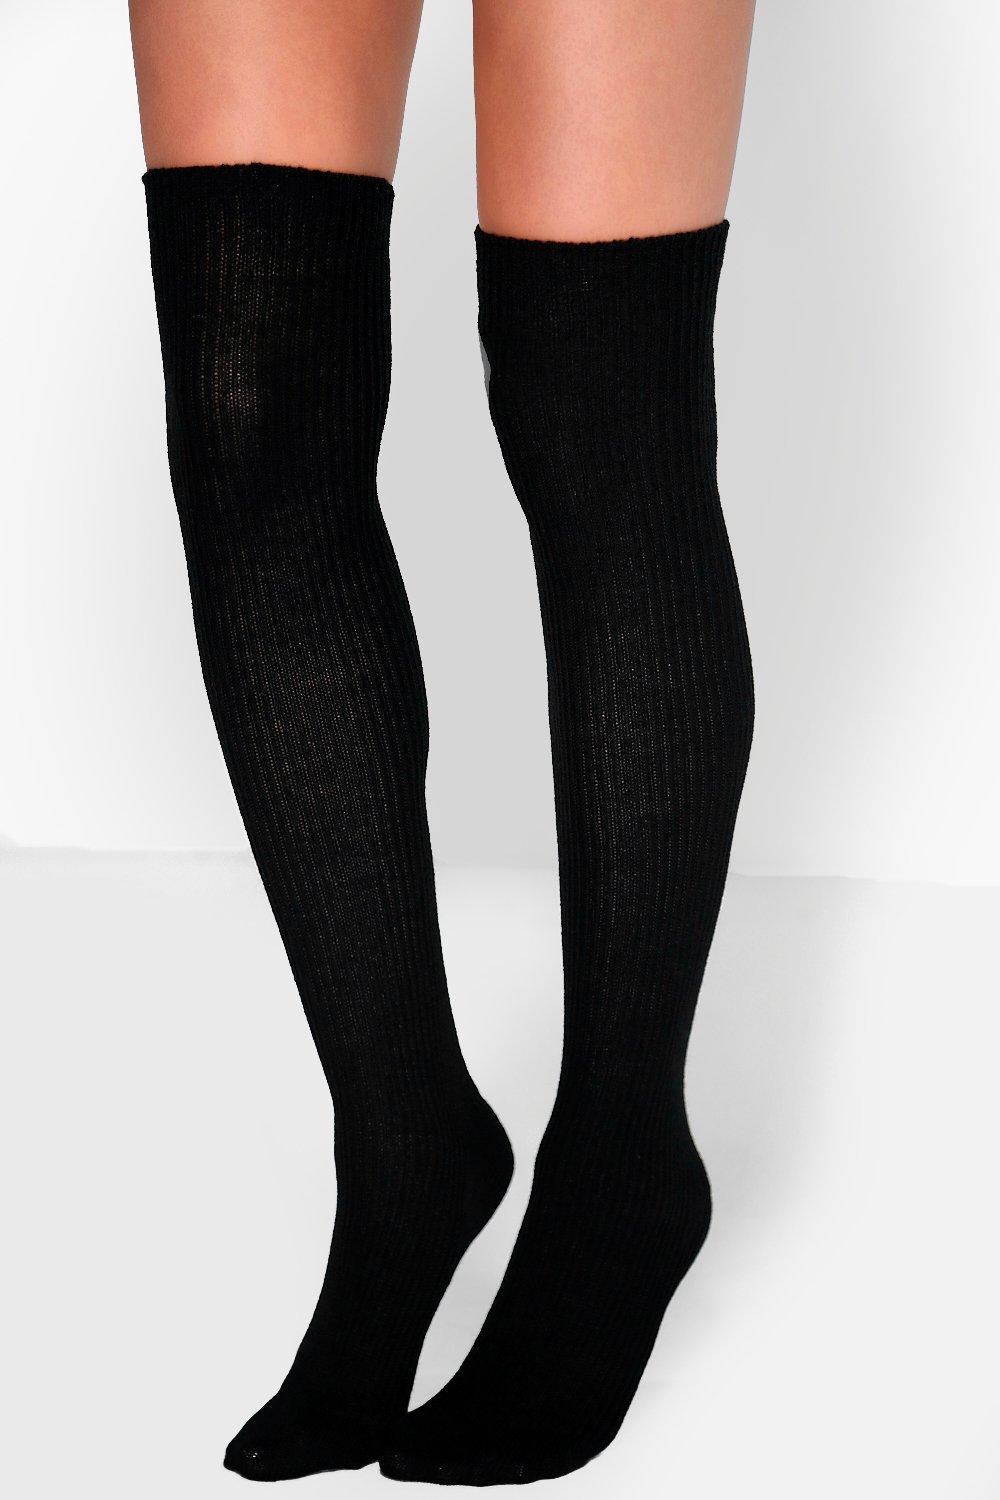 b3614a4ede9 ... Knit Knee High Socks. Hover to zoom